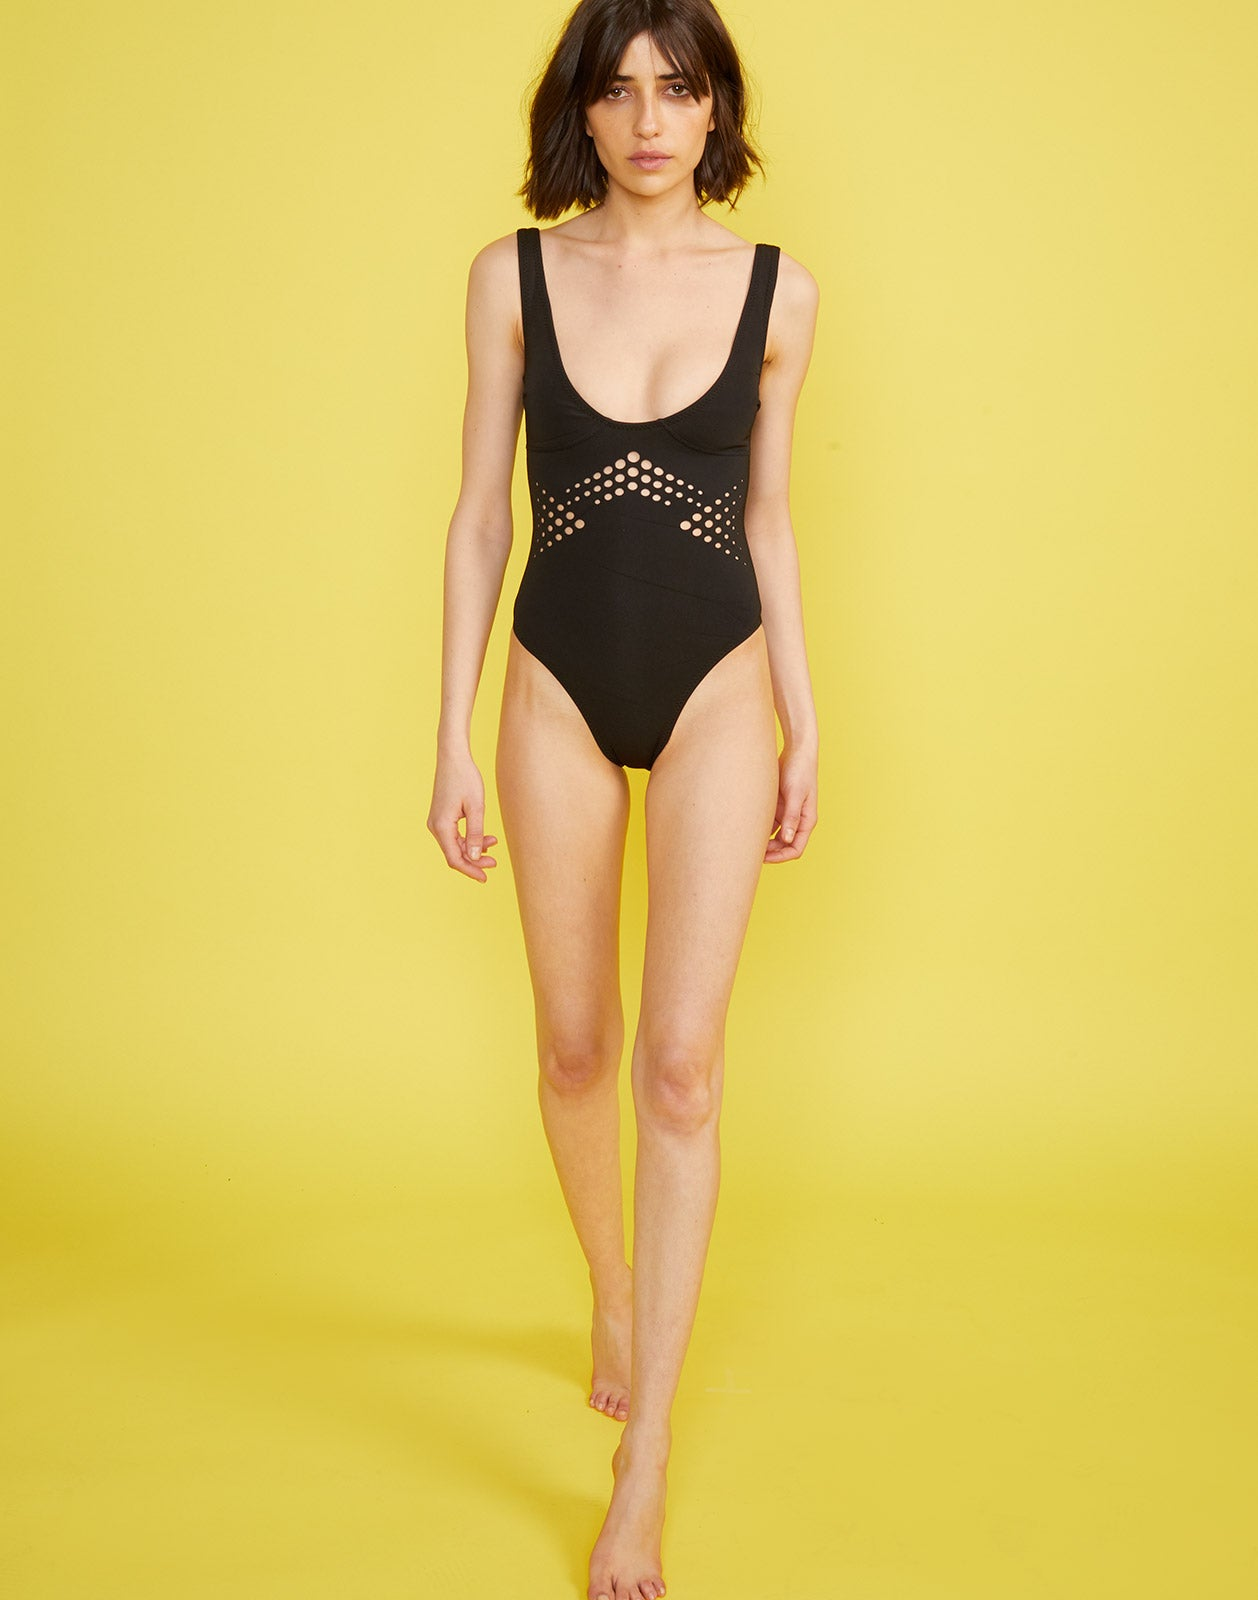 Full length view of model wearing Maui perforated one piece in black.